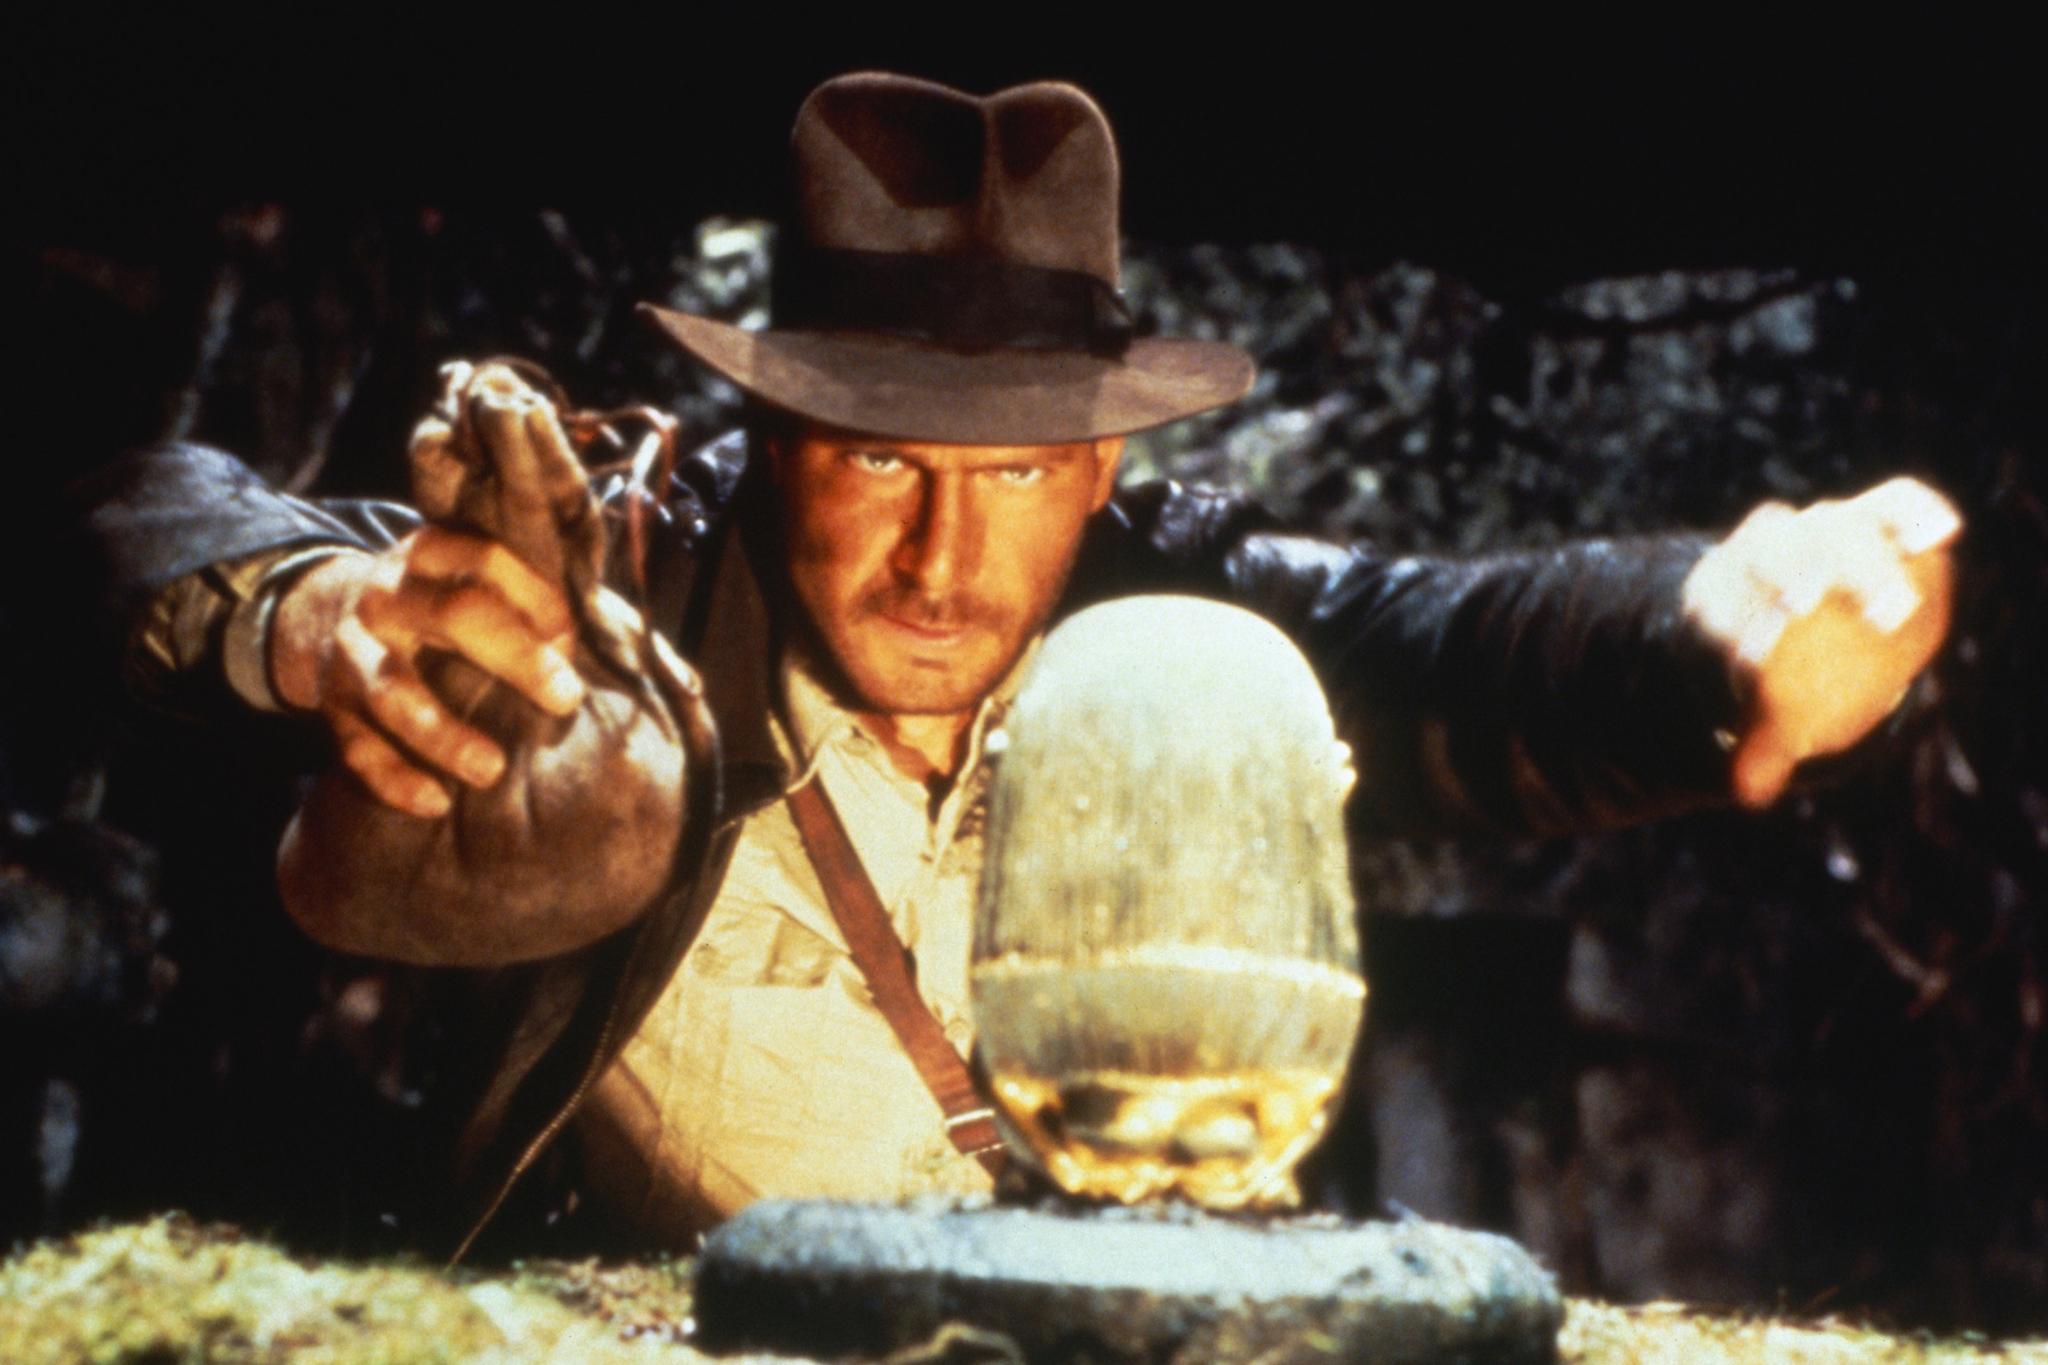 Raiders of the Lost Ark, 101 best action movies, Harrison Ford